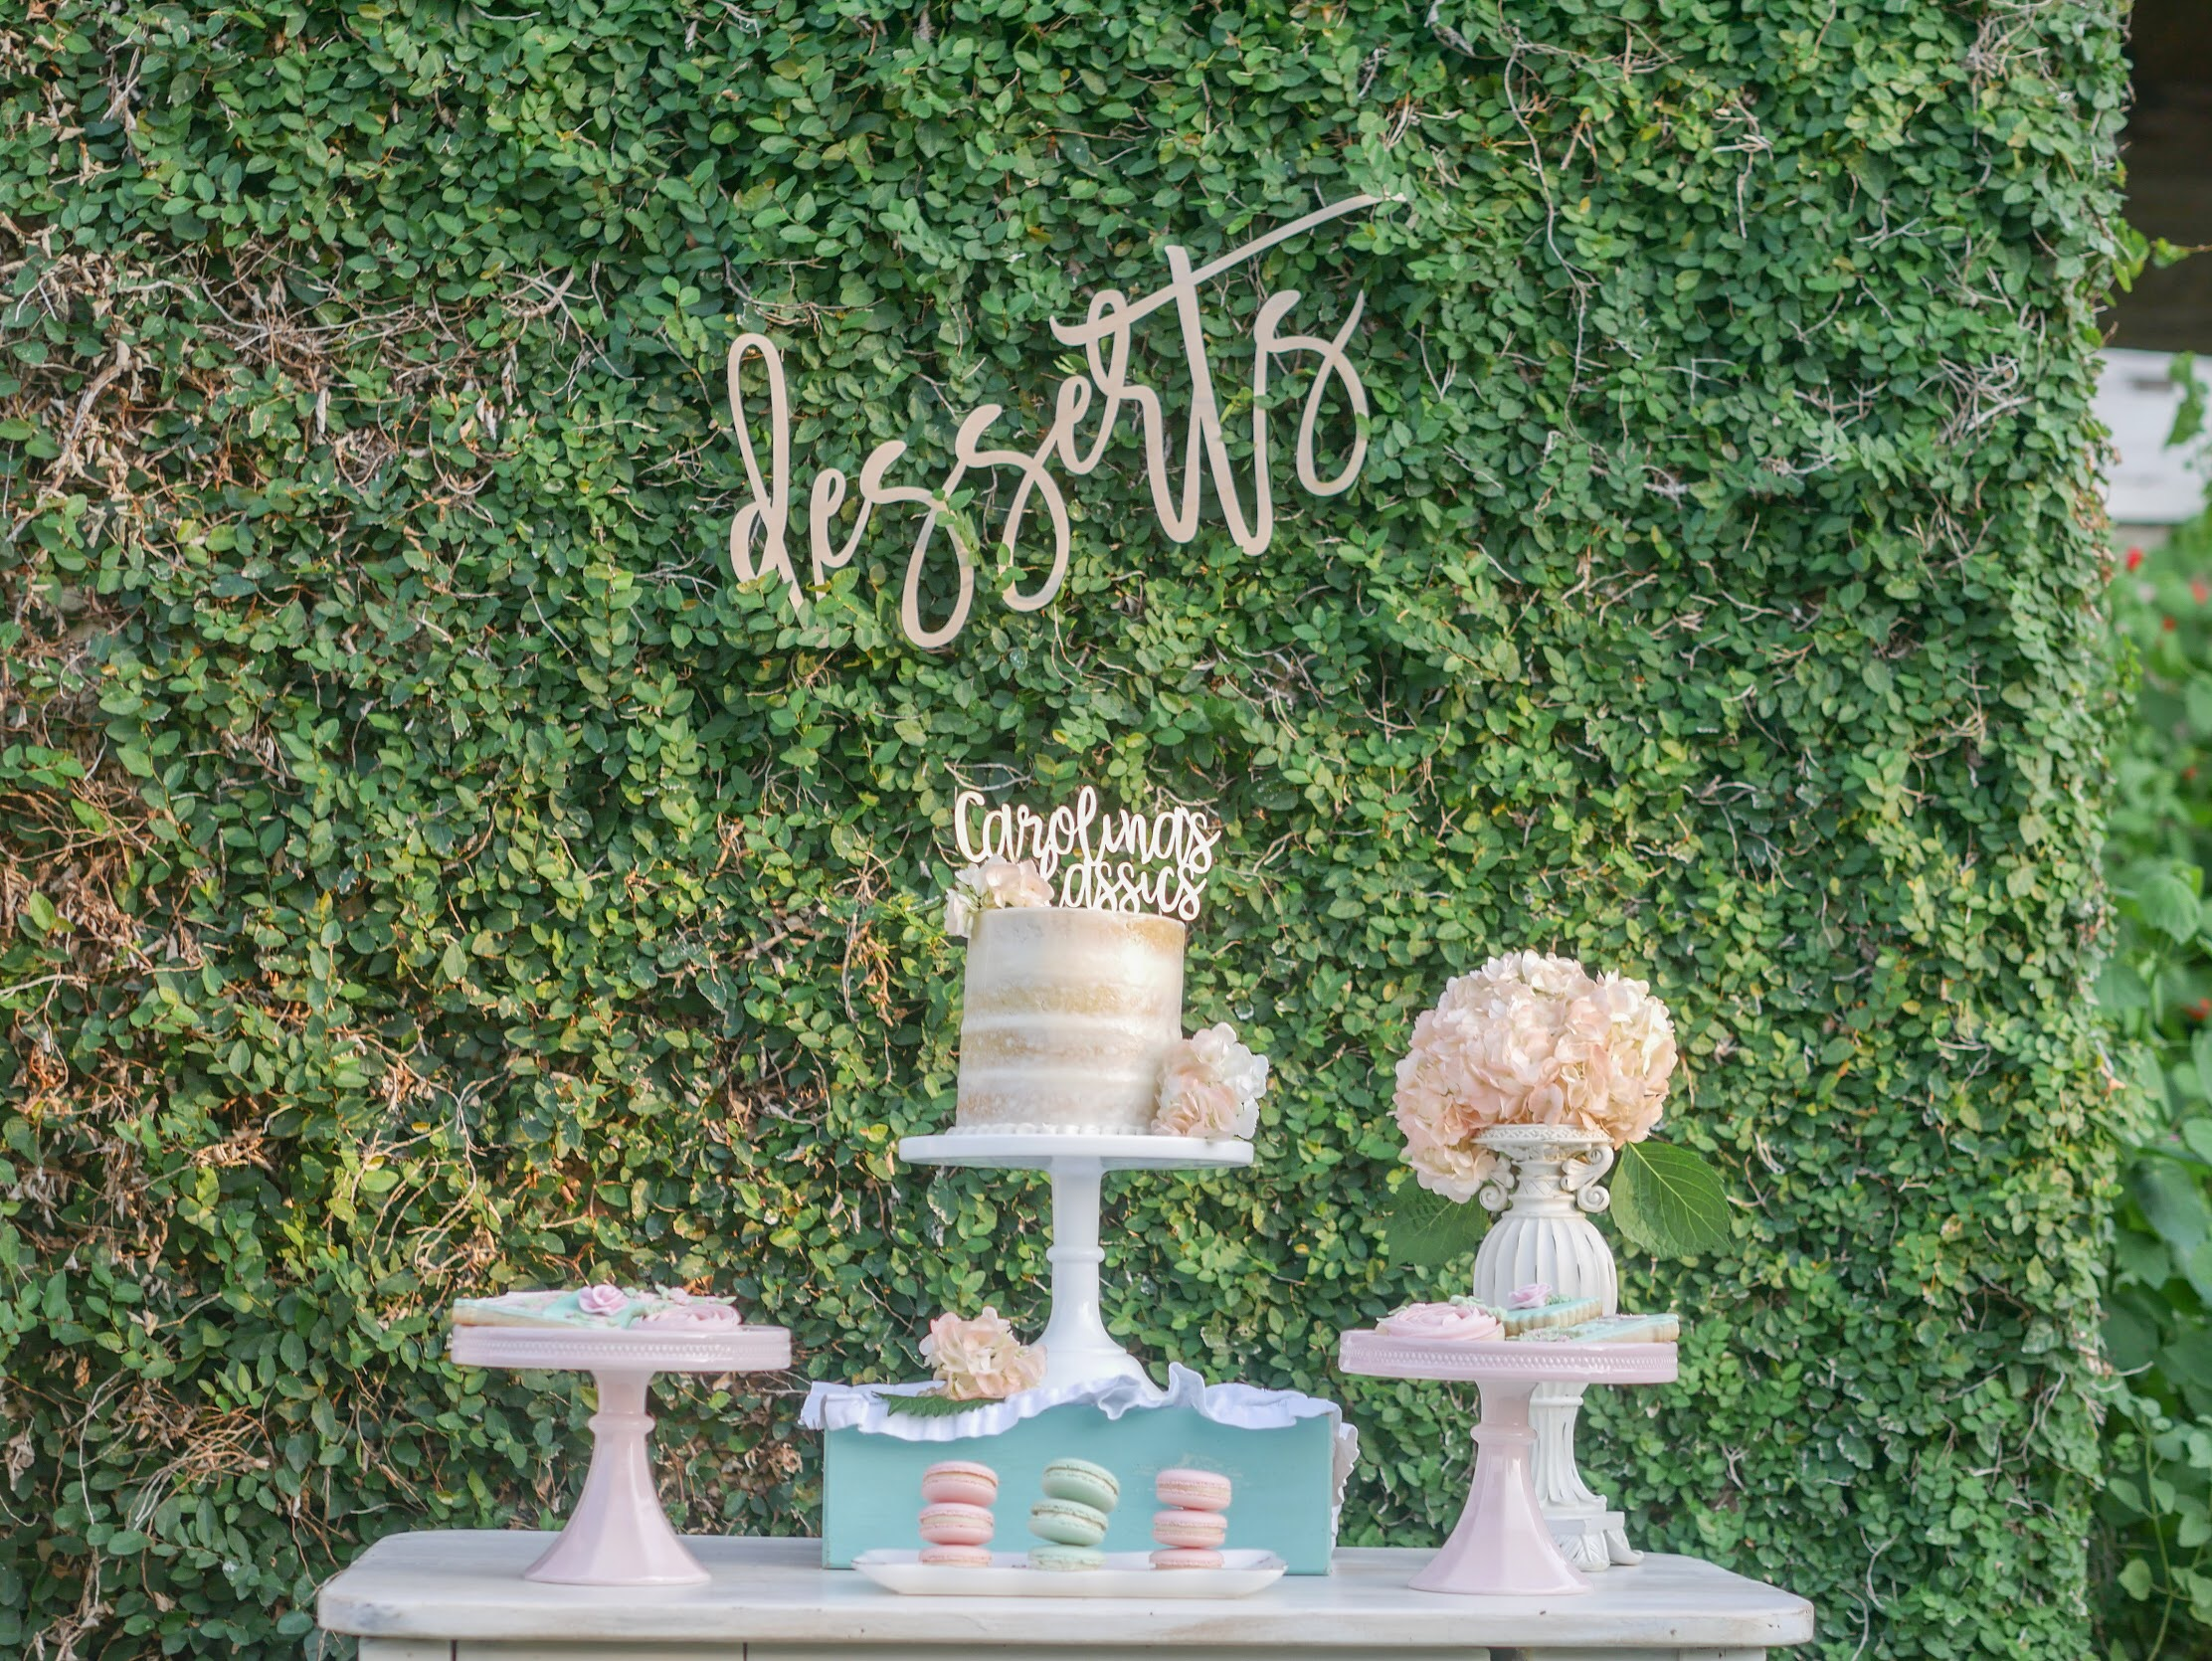 This vintage inspired garden party has so many great ideas. Click to see how to create your own outdoor garden party (with an indoor version too) on Mint Event Design www.minteventdesign.com #dessertparty #partytips #partyplanning #partyideas #diyparty #desserttable #outdoorparty